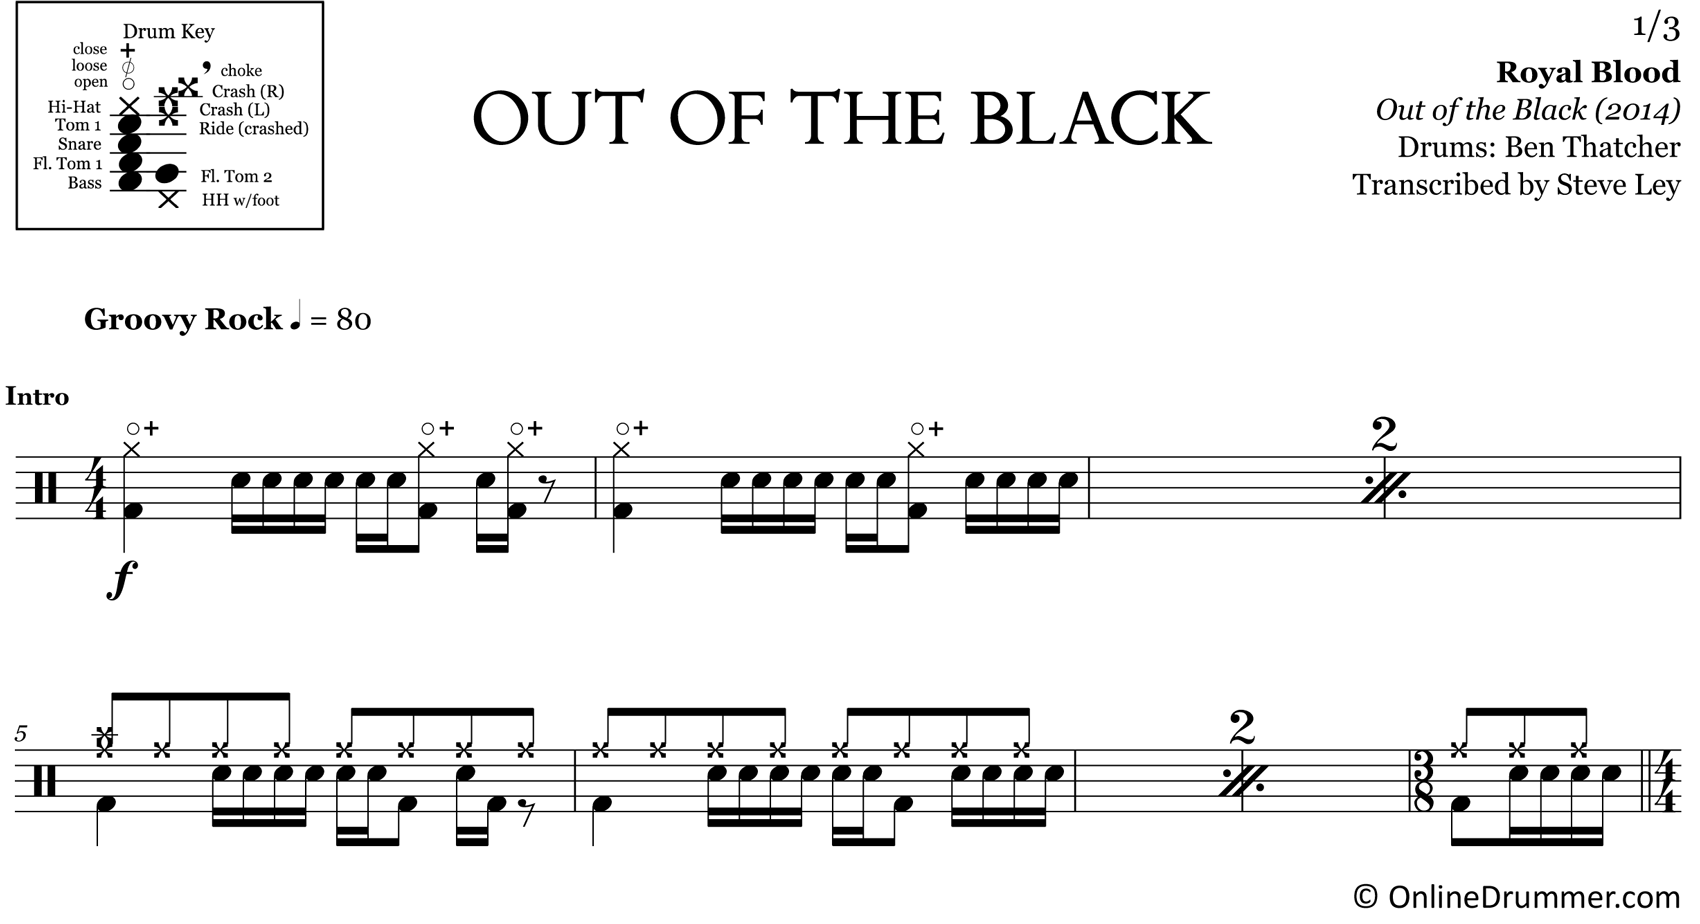 Out of the Black - Royal Blood - Drum Sheet Music